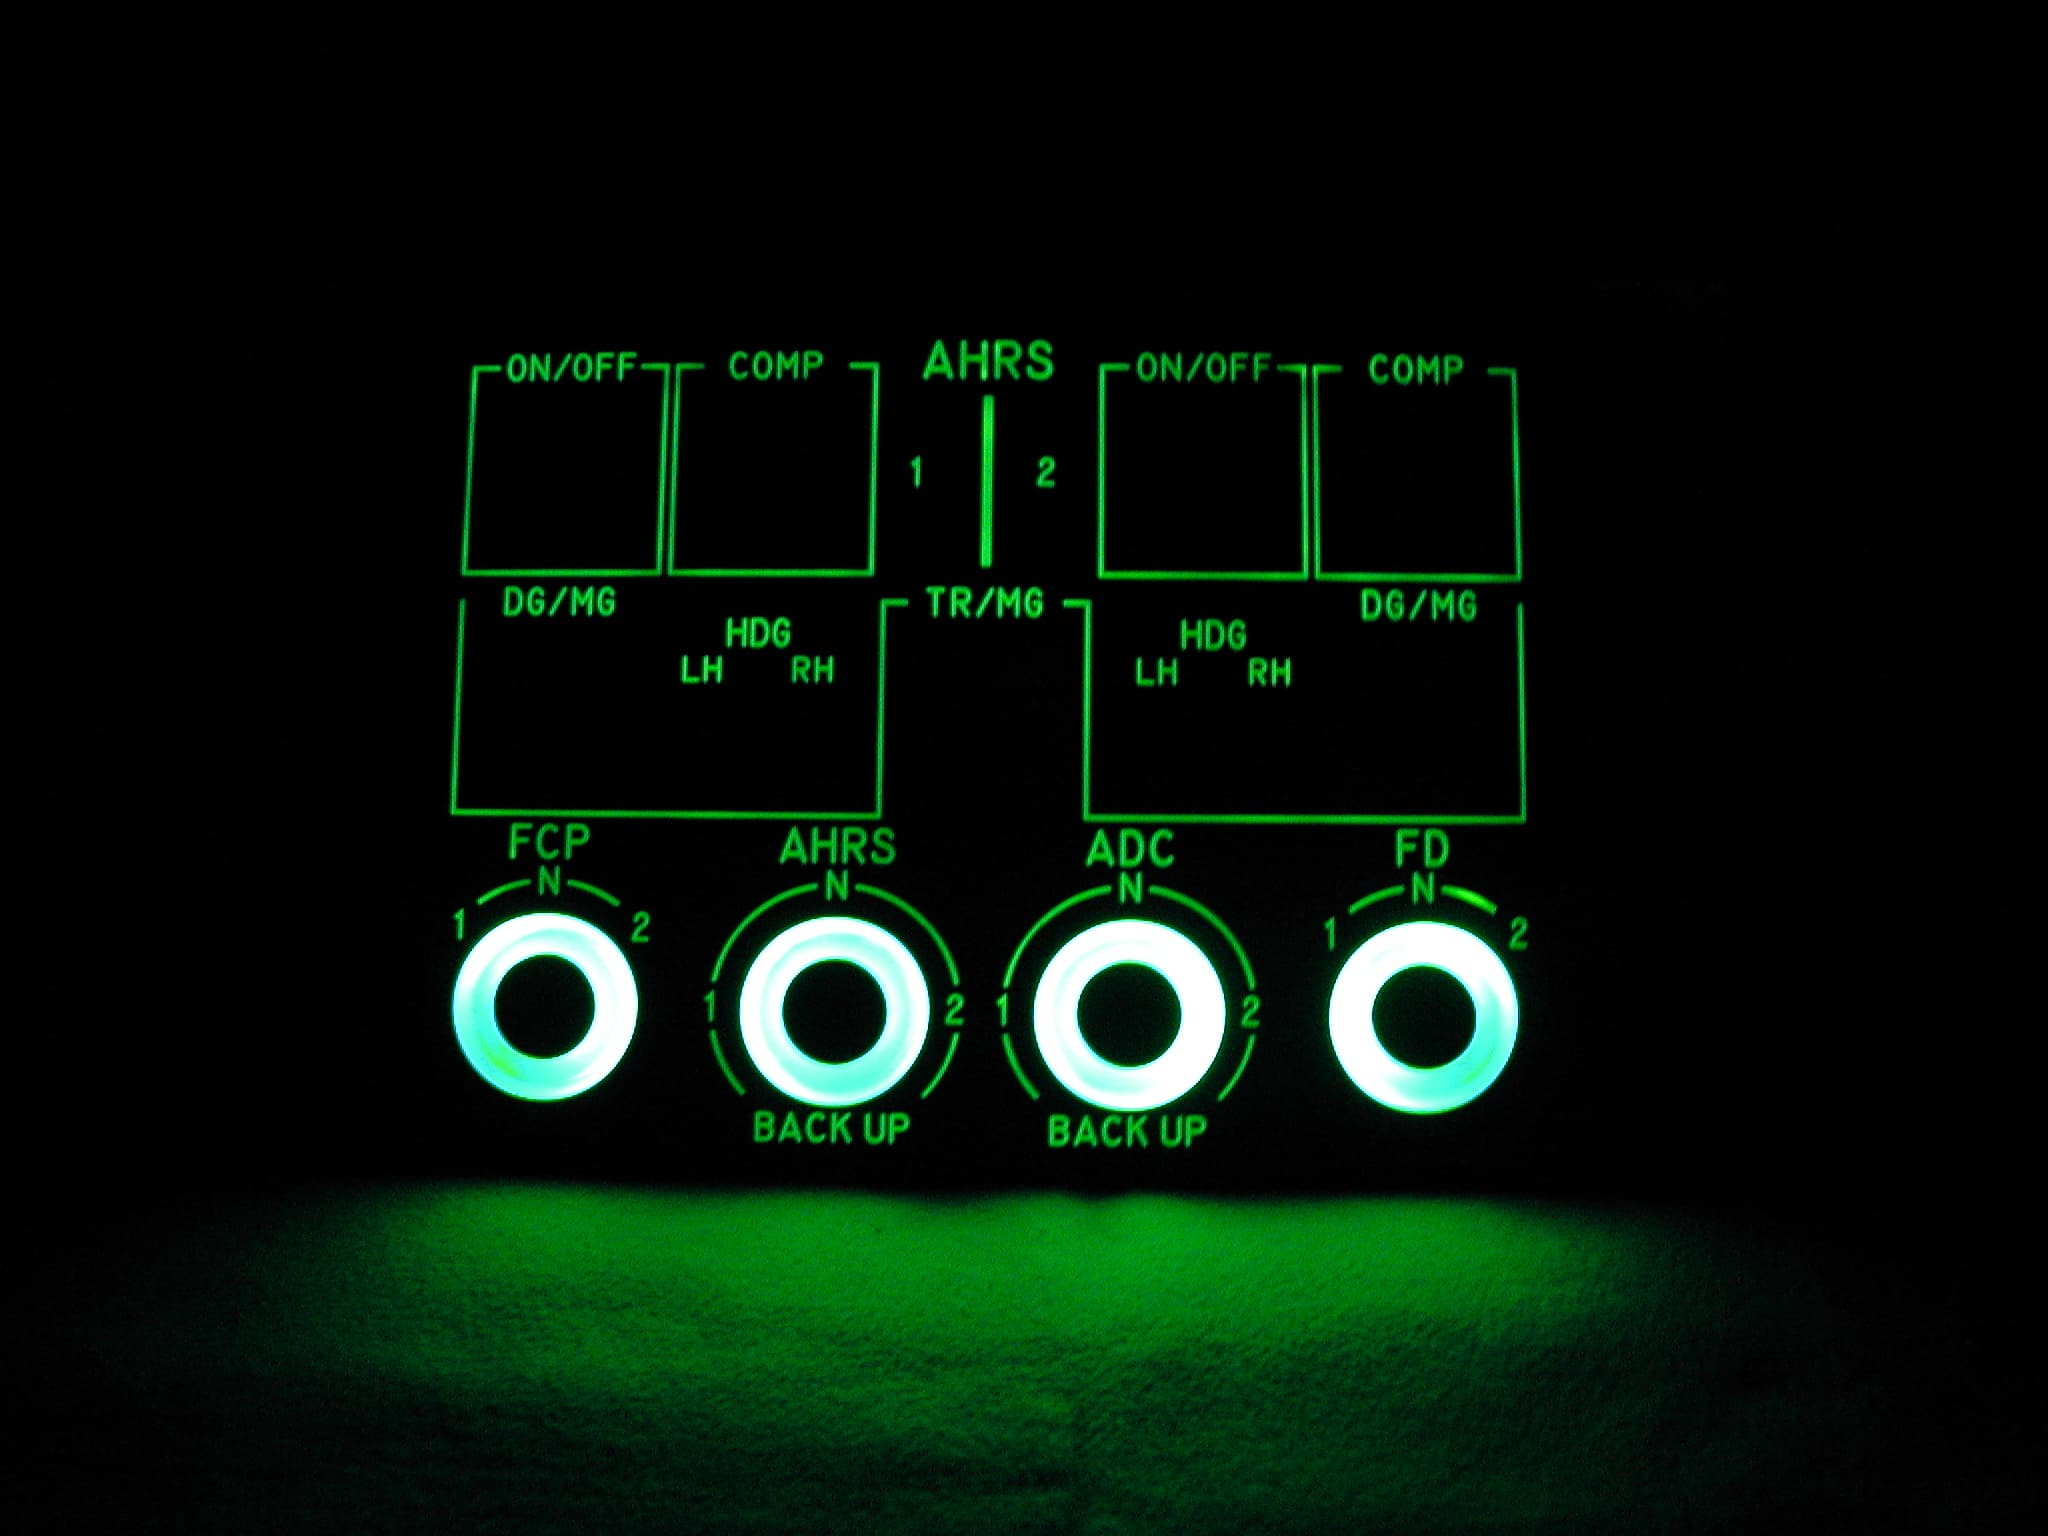 Lighting panels for transportation_aircrafts with NVIS